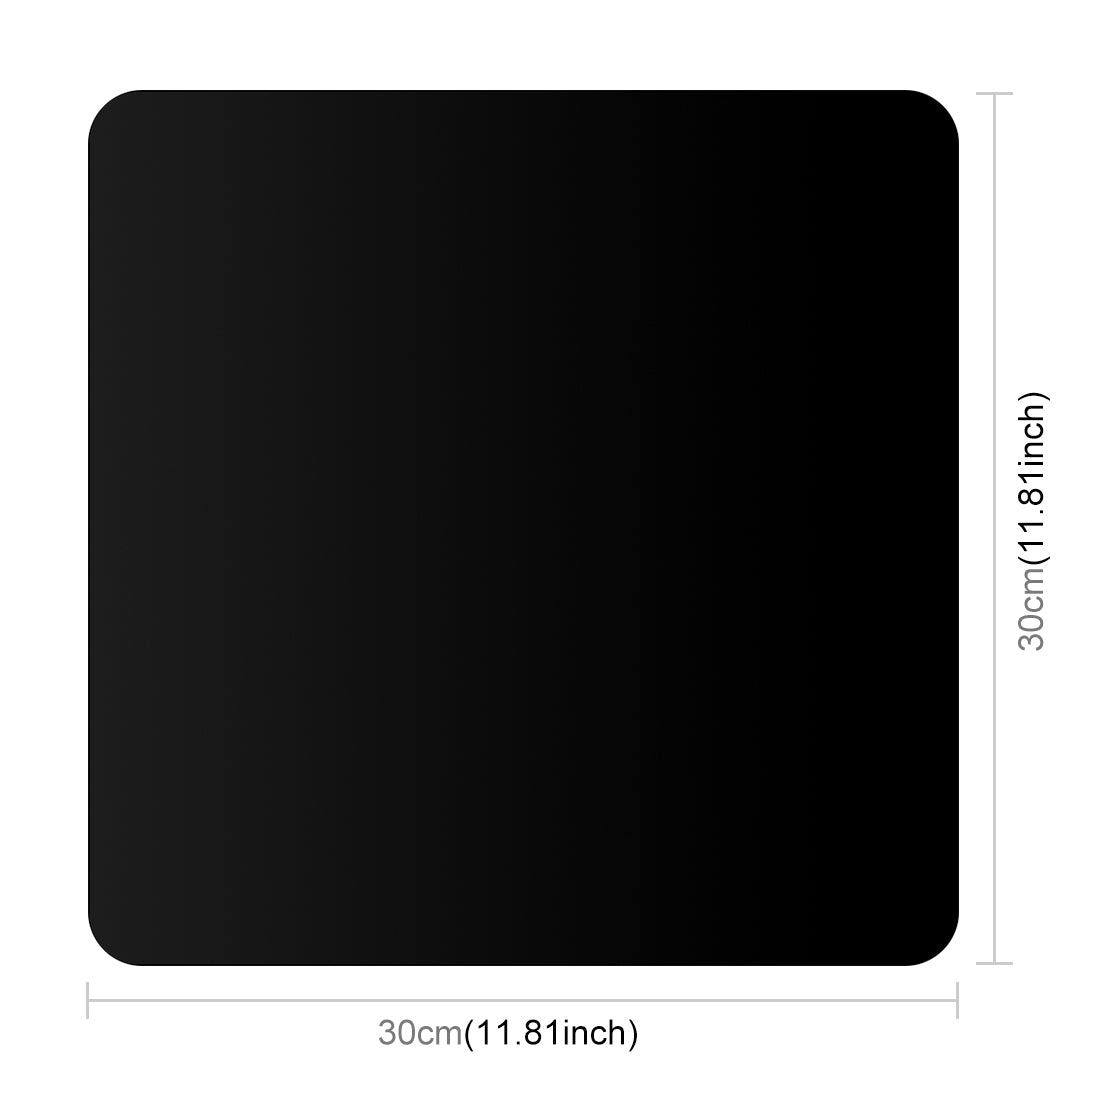 30cm Photography Acrylic Reflective Display Table Background Board (Black)